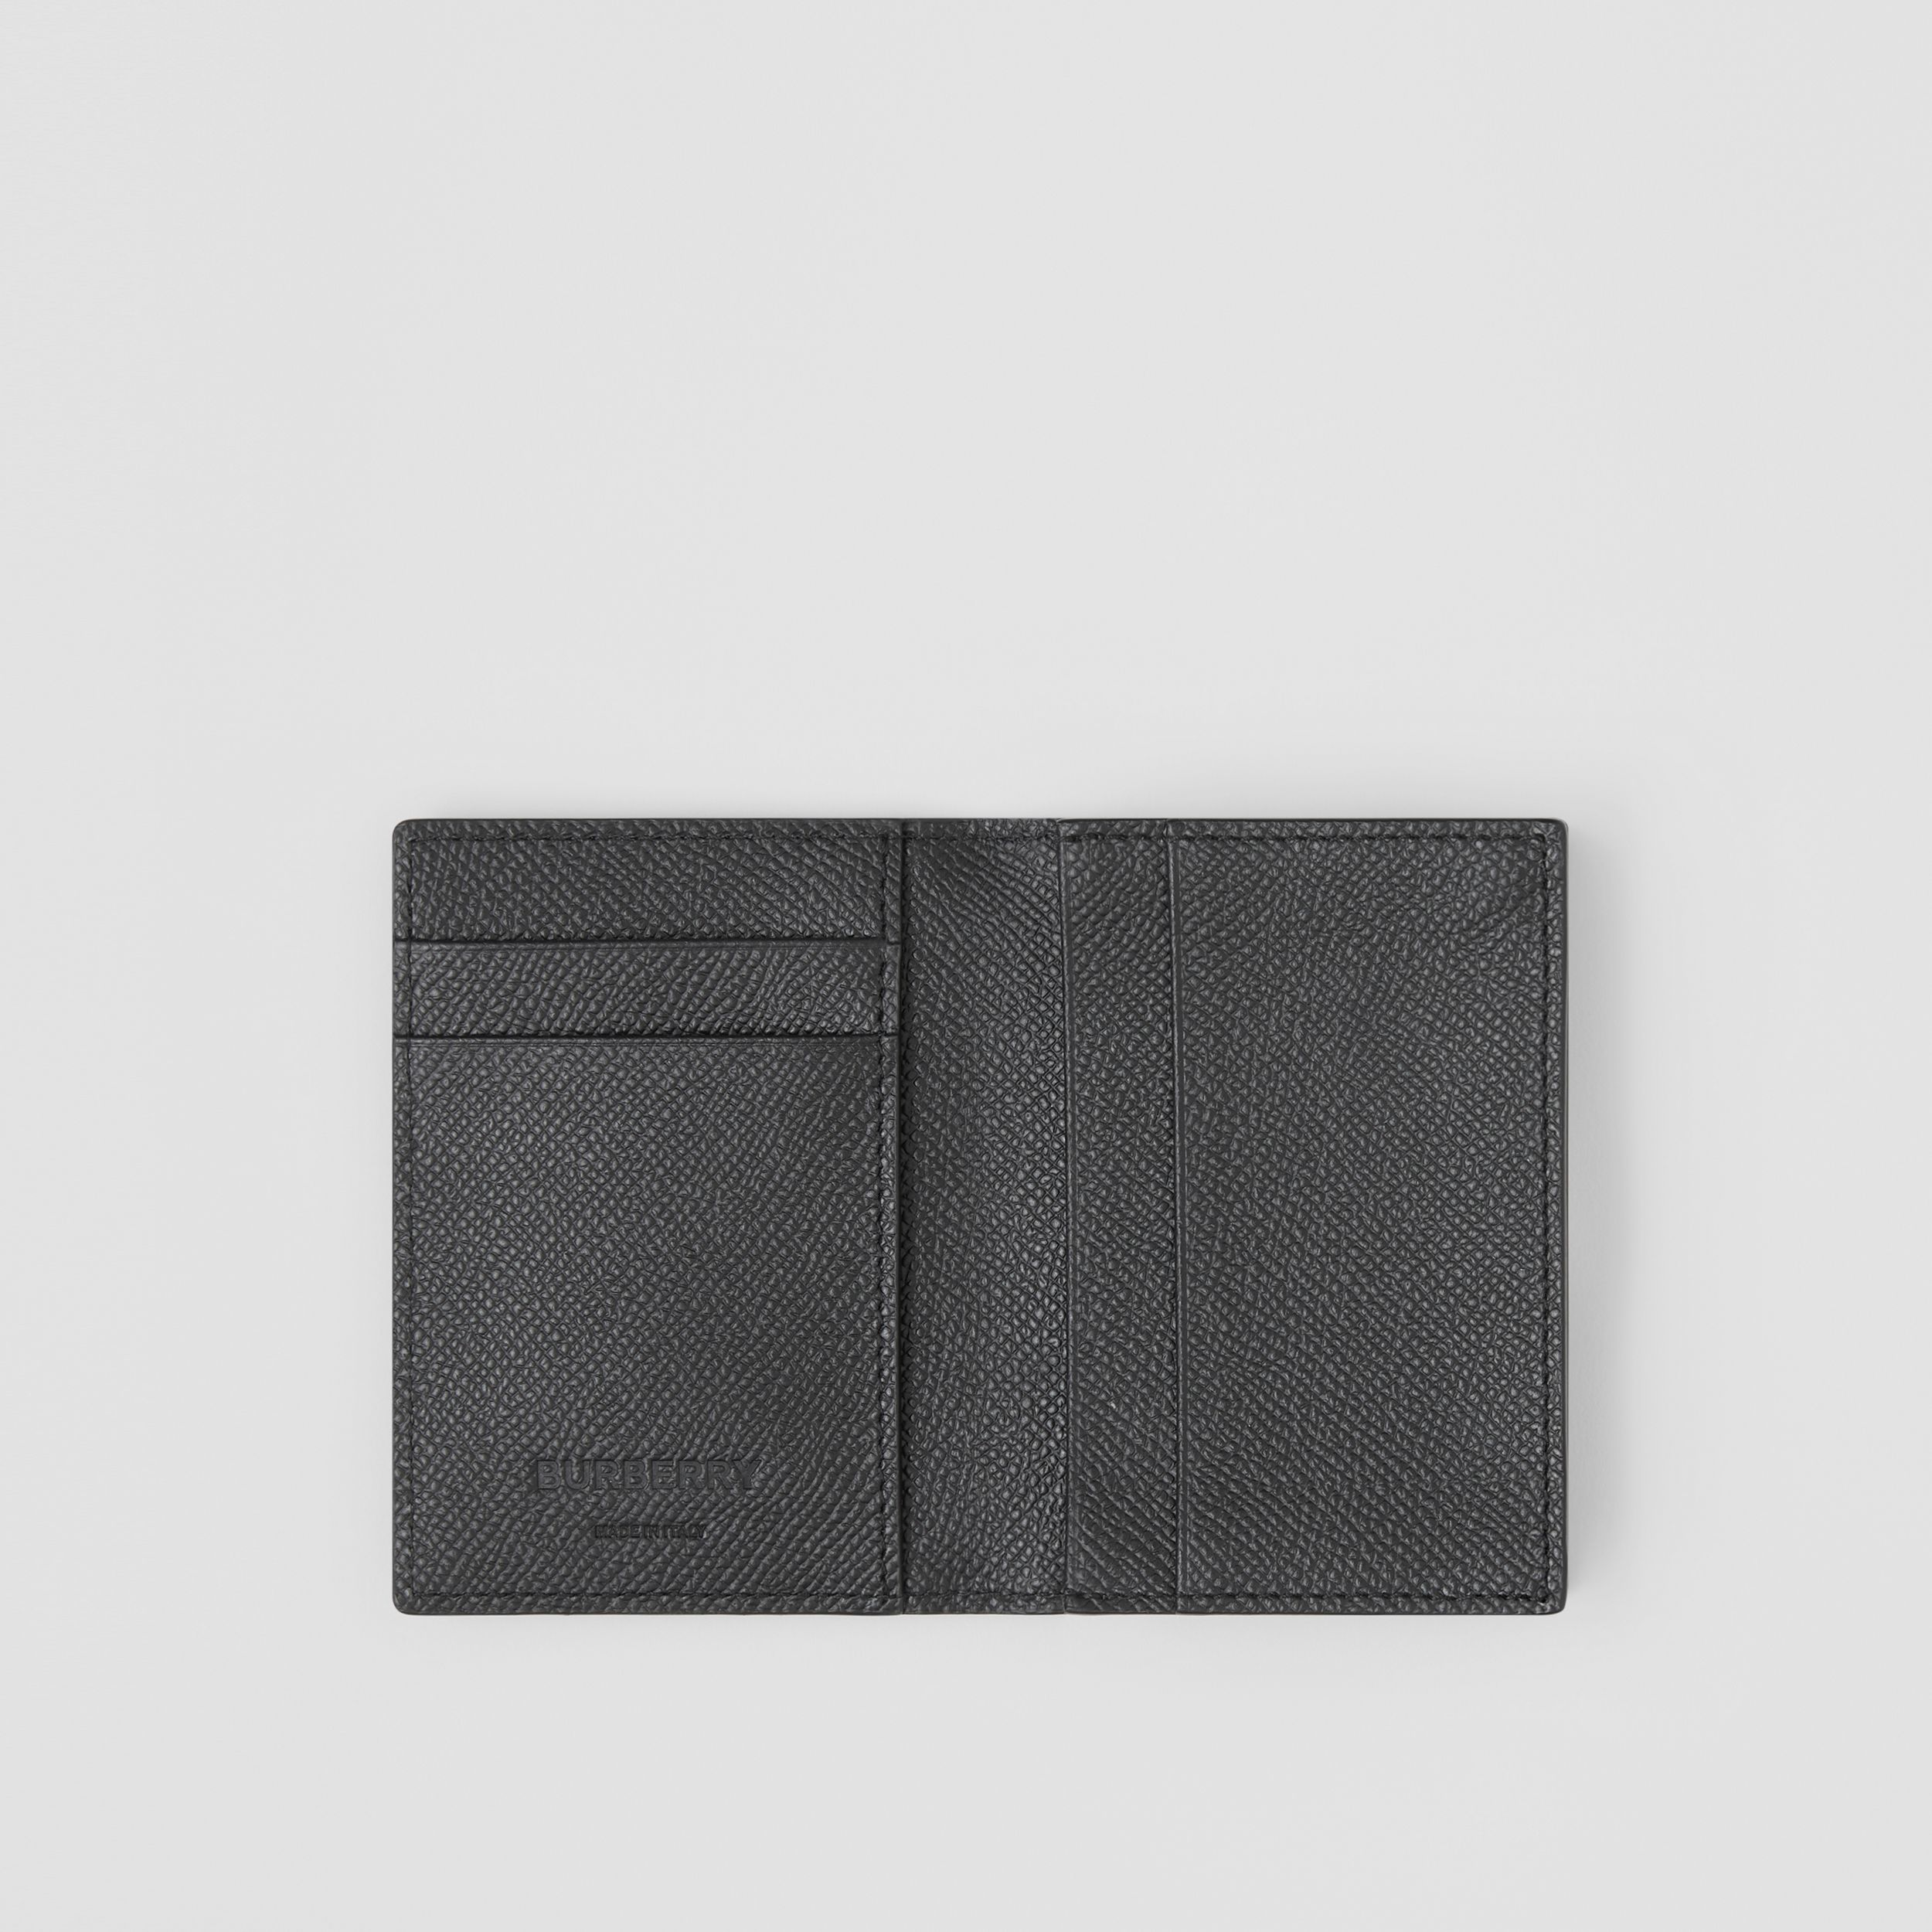 Grainy Leather Folding Card Case in Black - Men | Burberry - 3